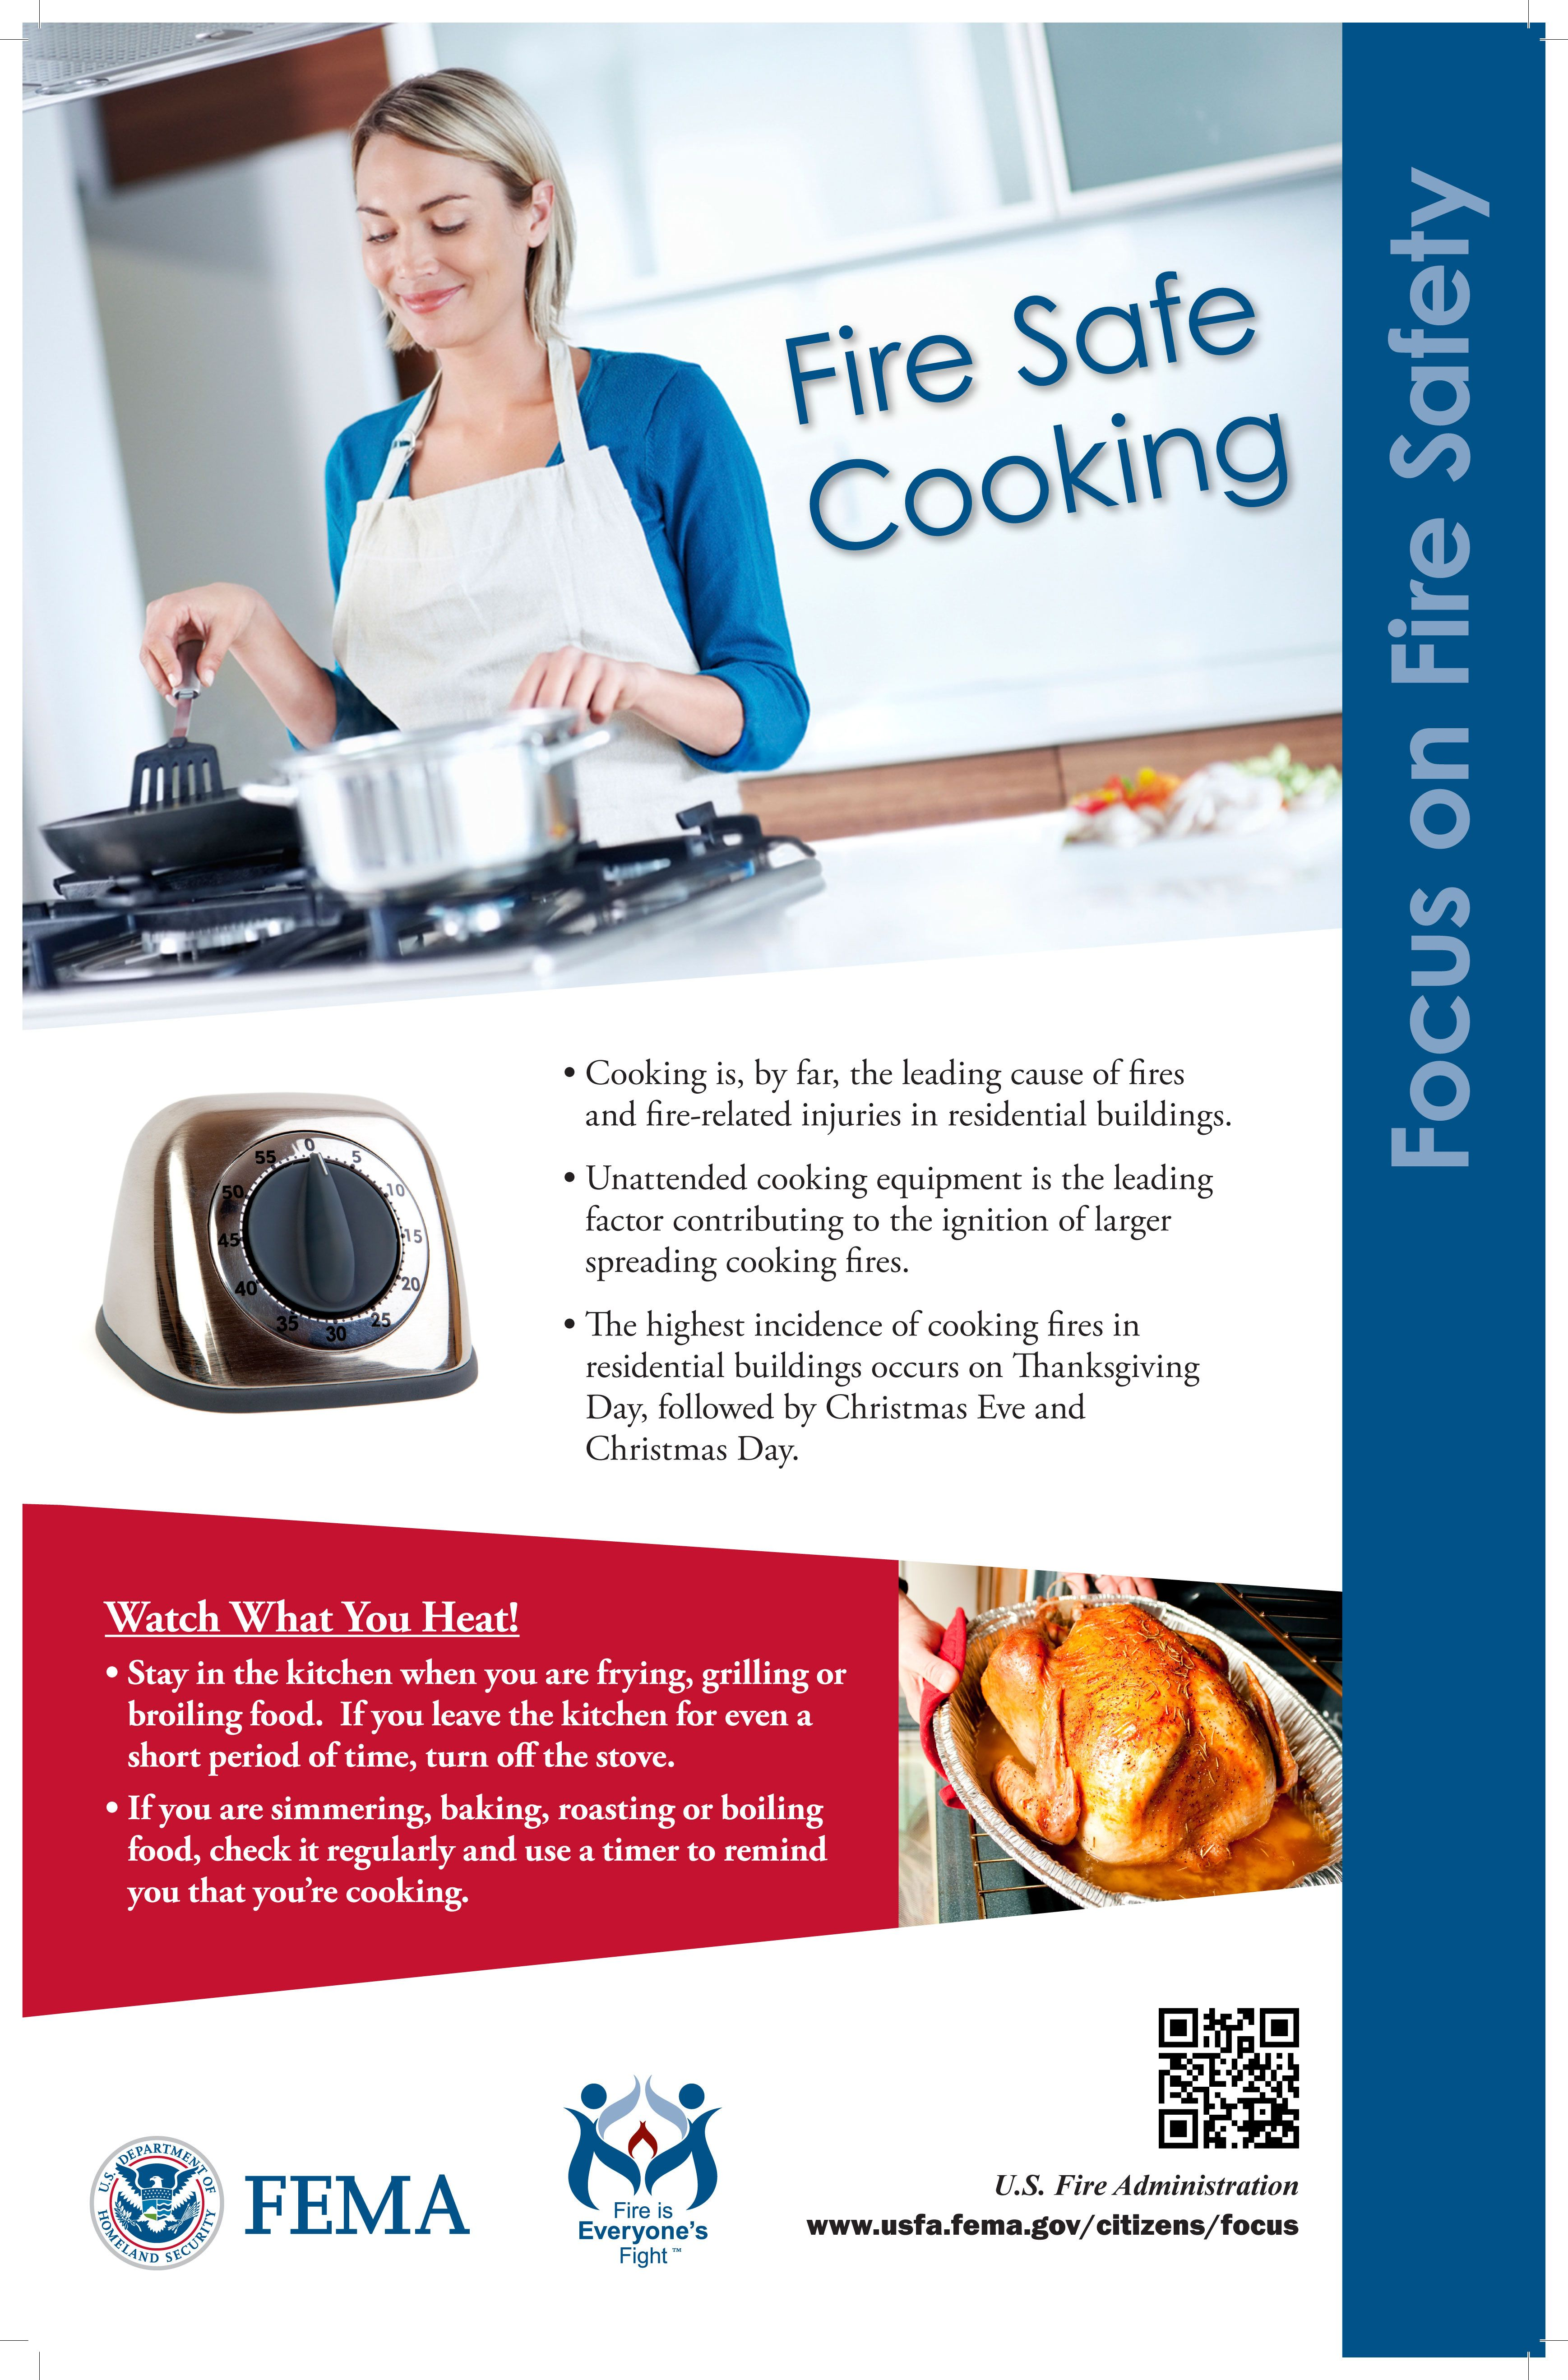 Fire safe cooking information from FEMA Safe cooking